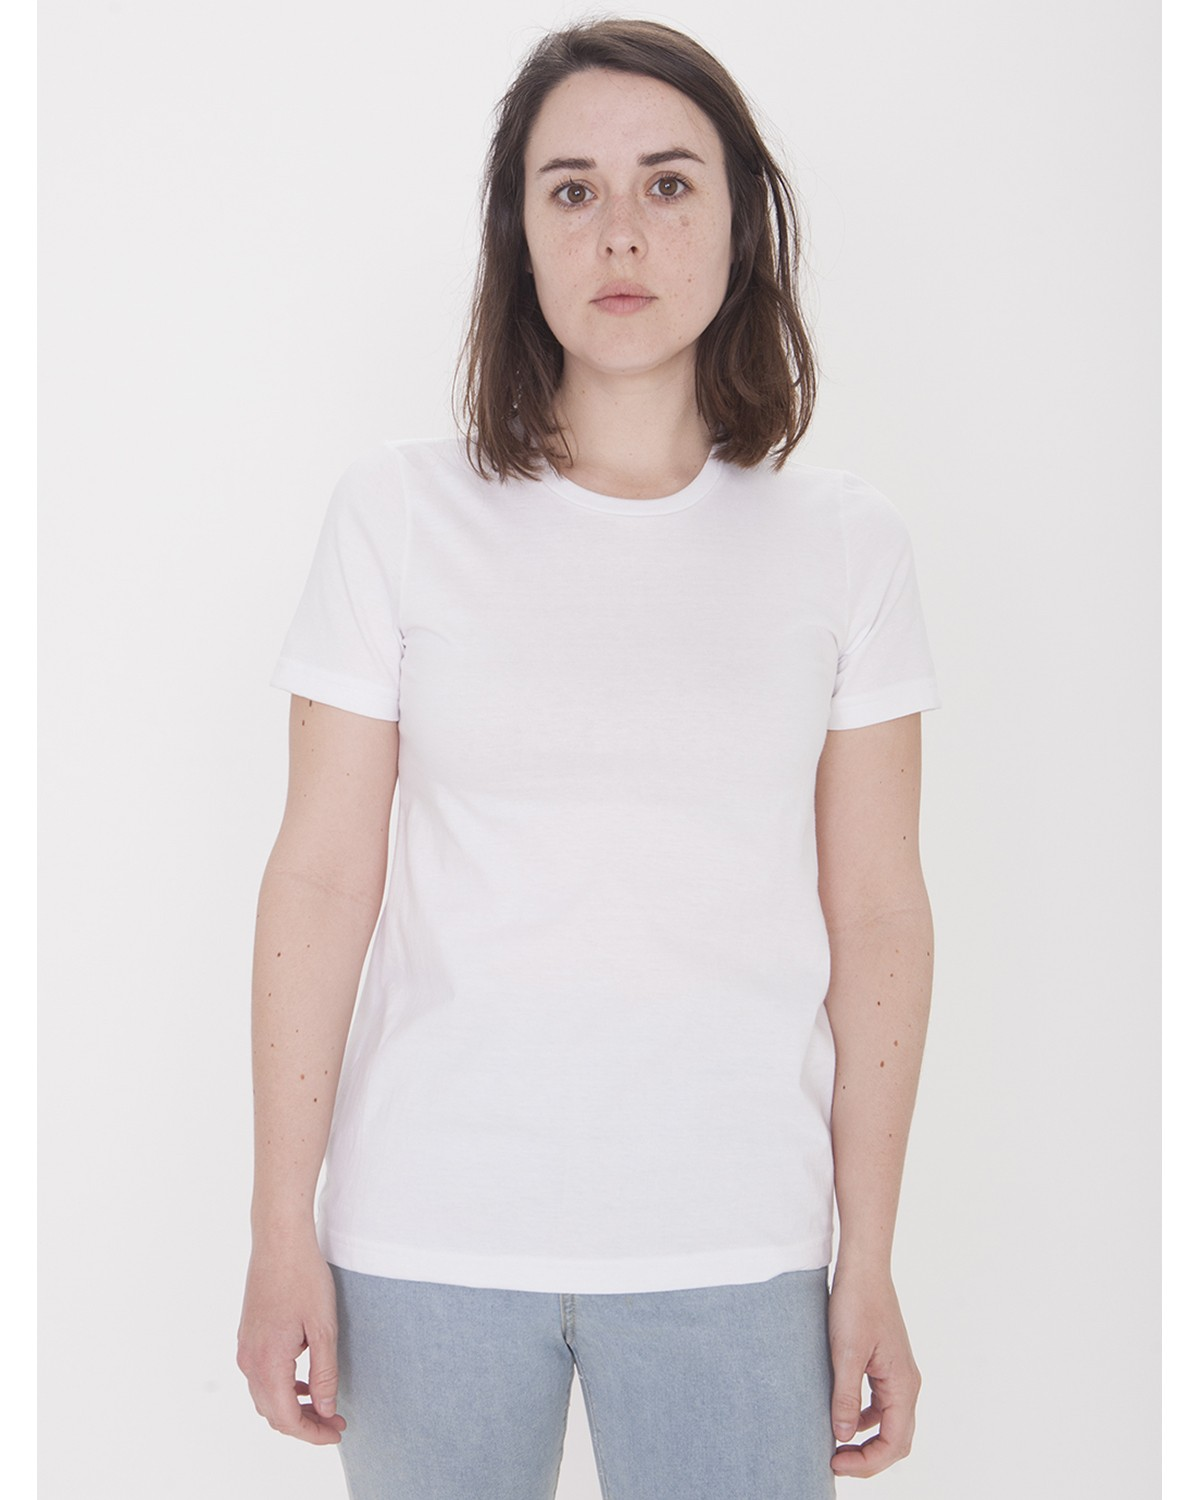 23215OW American Apparel WHITE